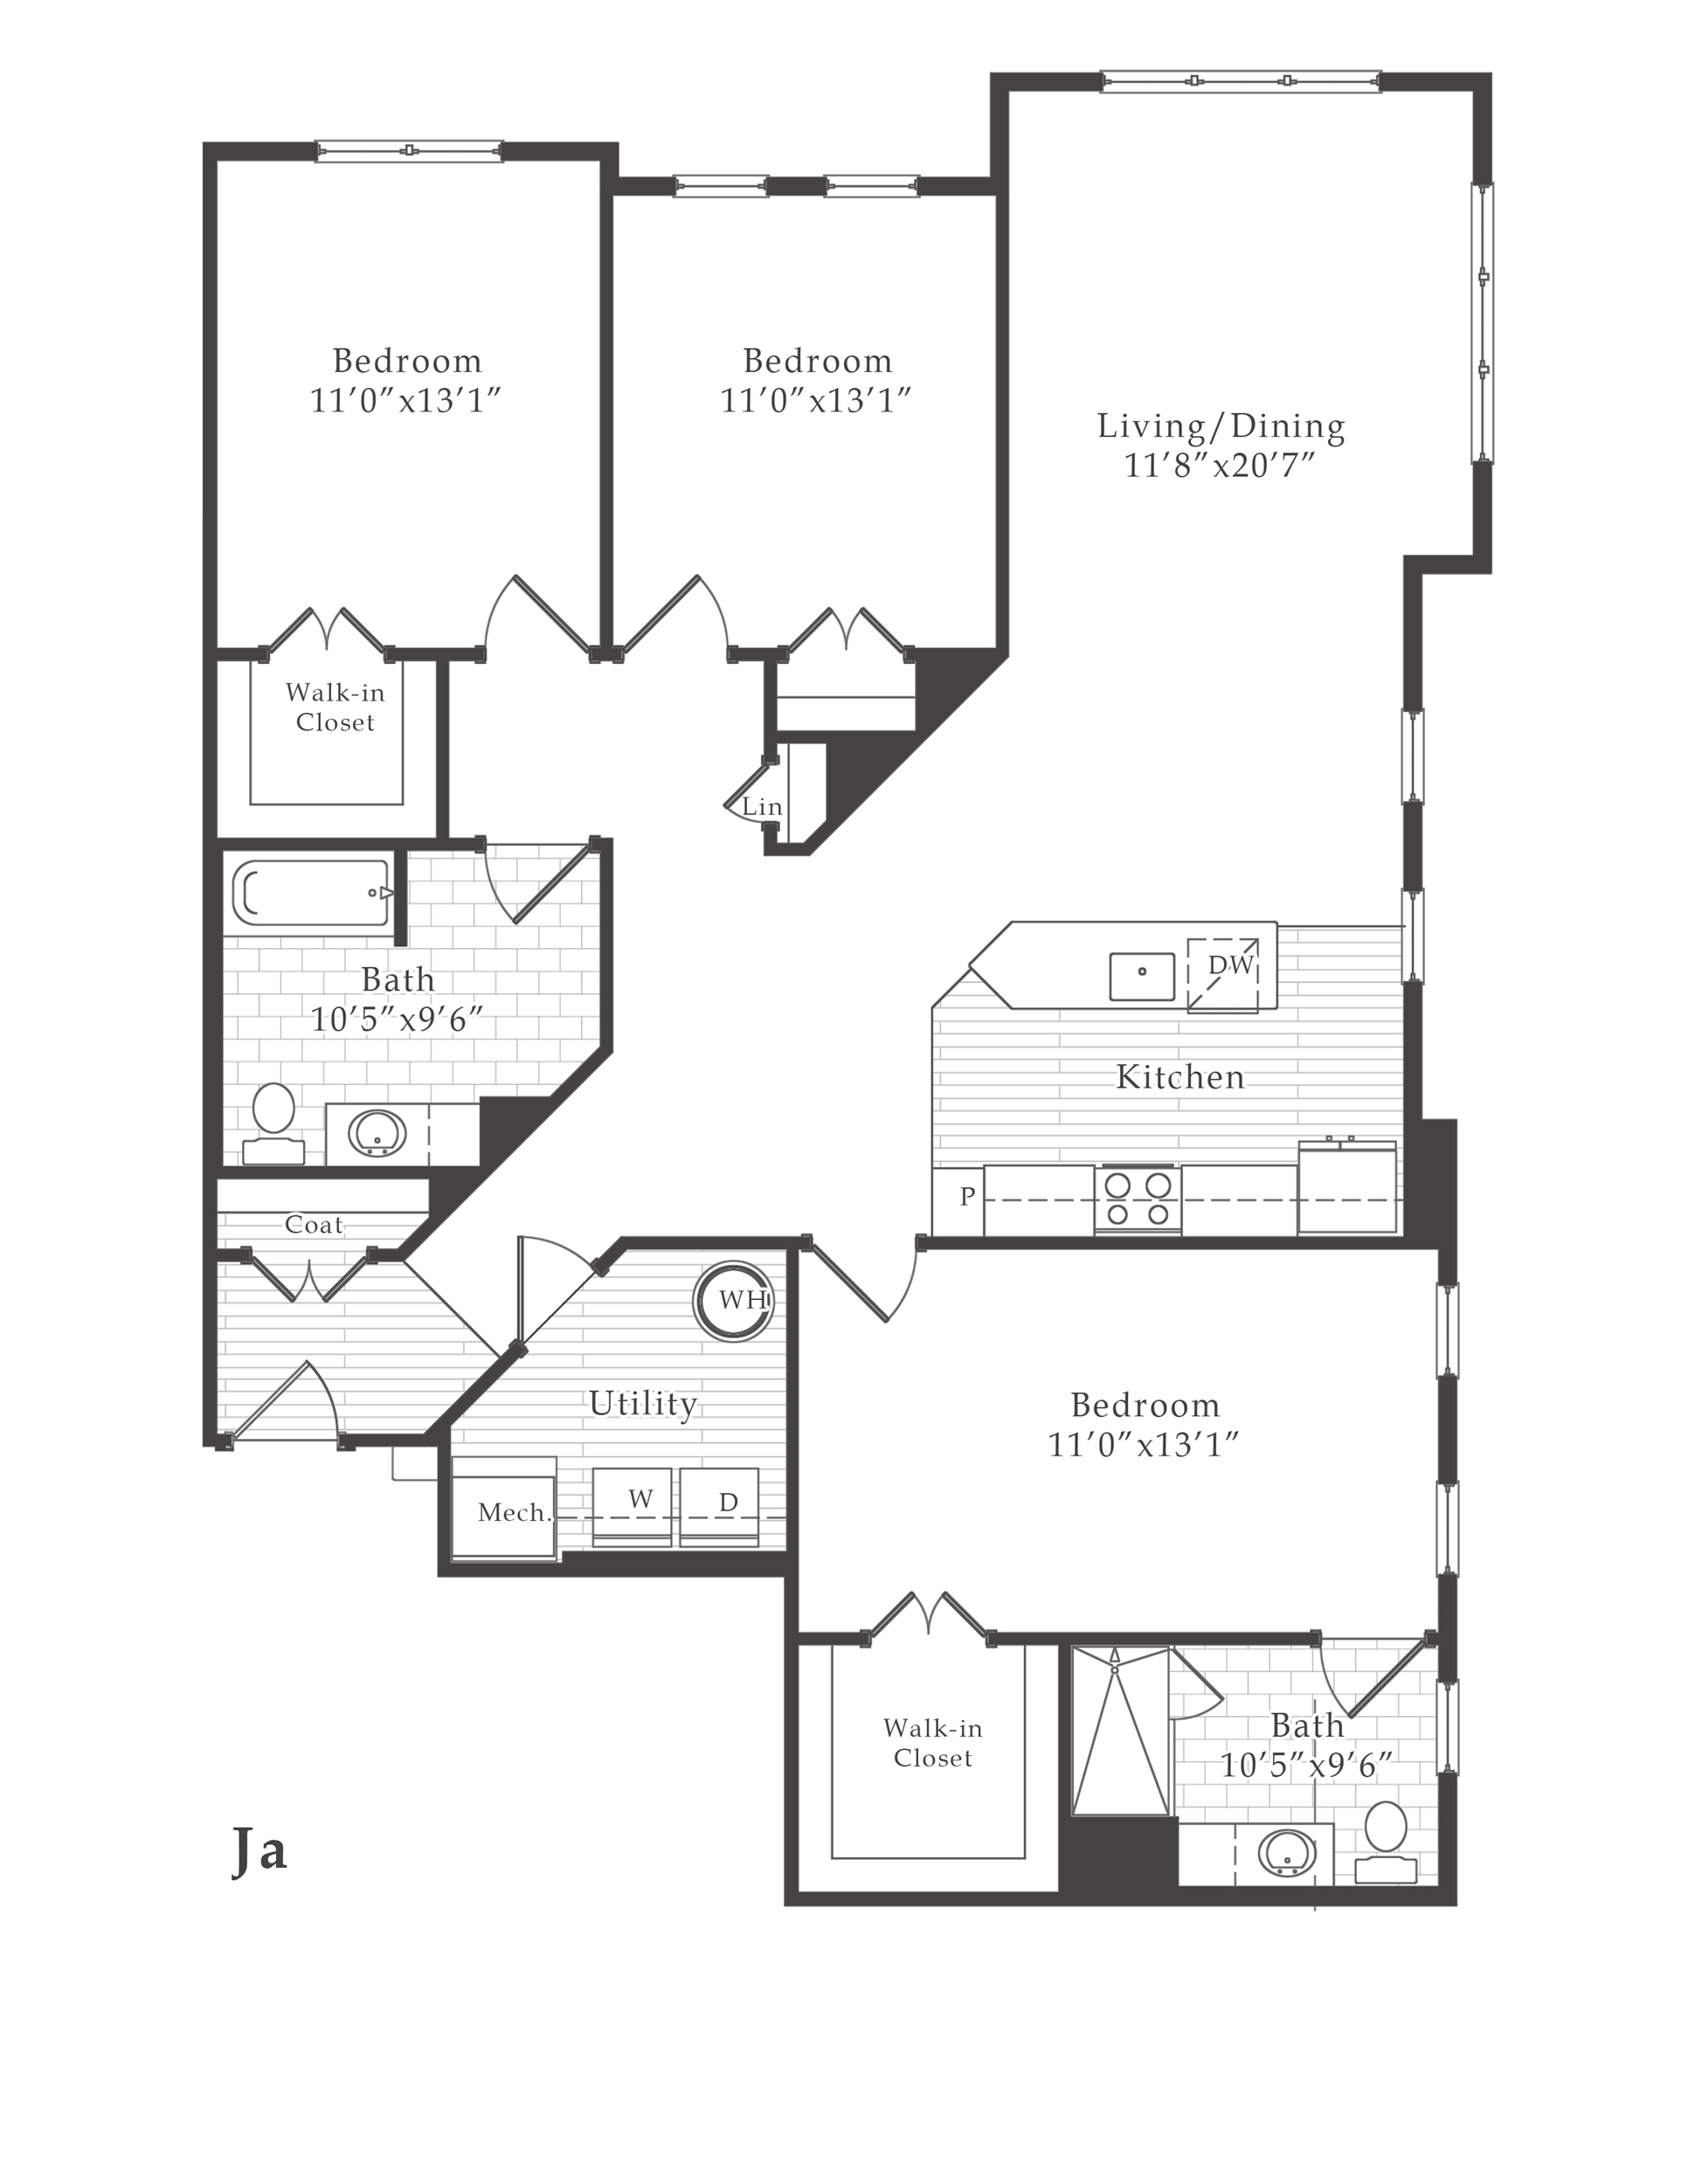 816cc03 md laurel thevine p0637686 vineja1652 2 floorplan